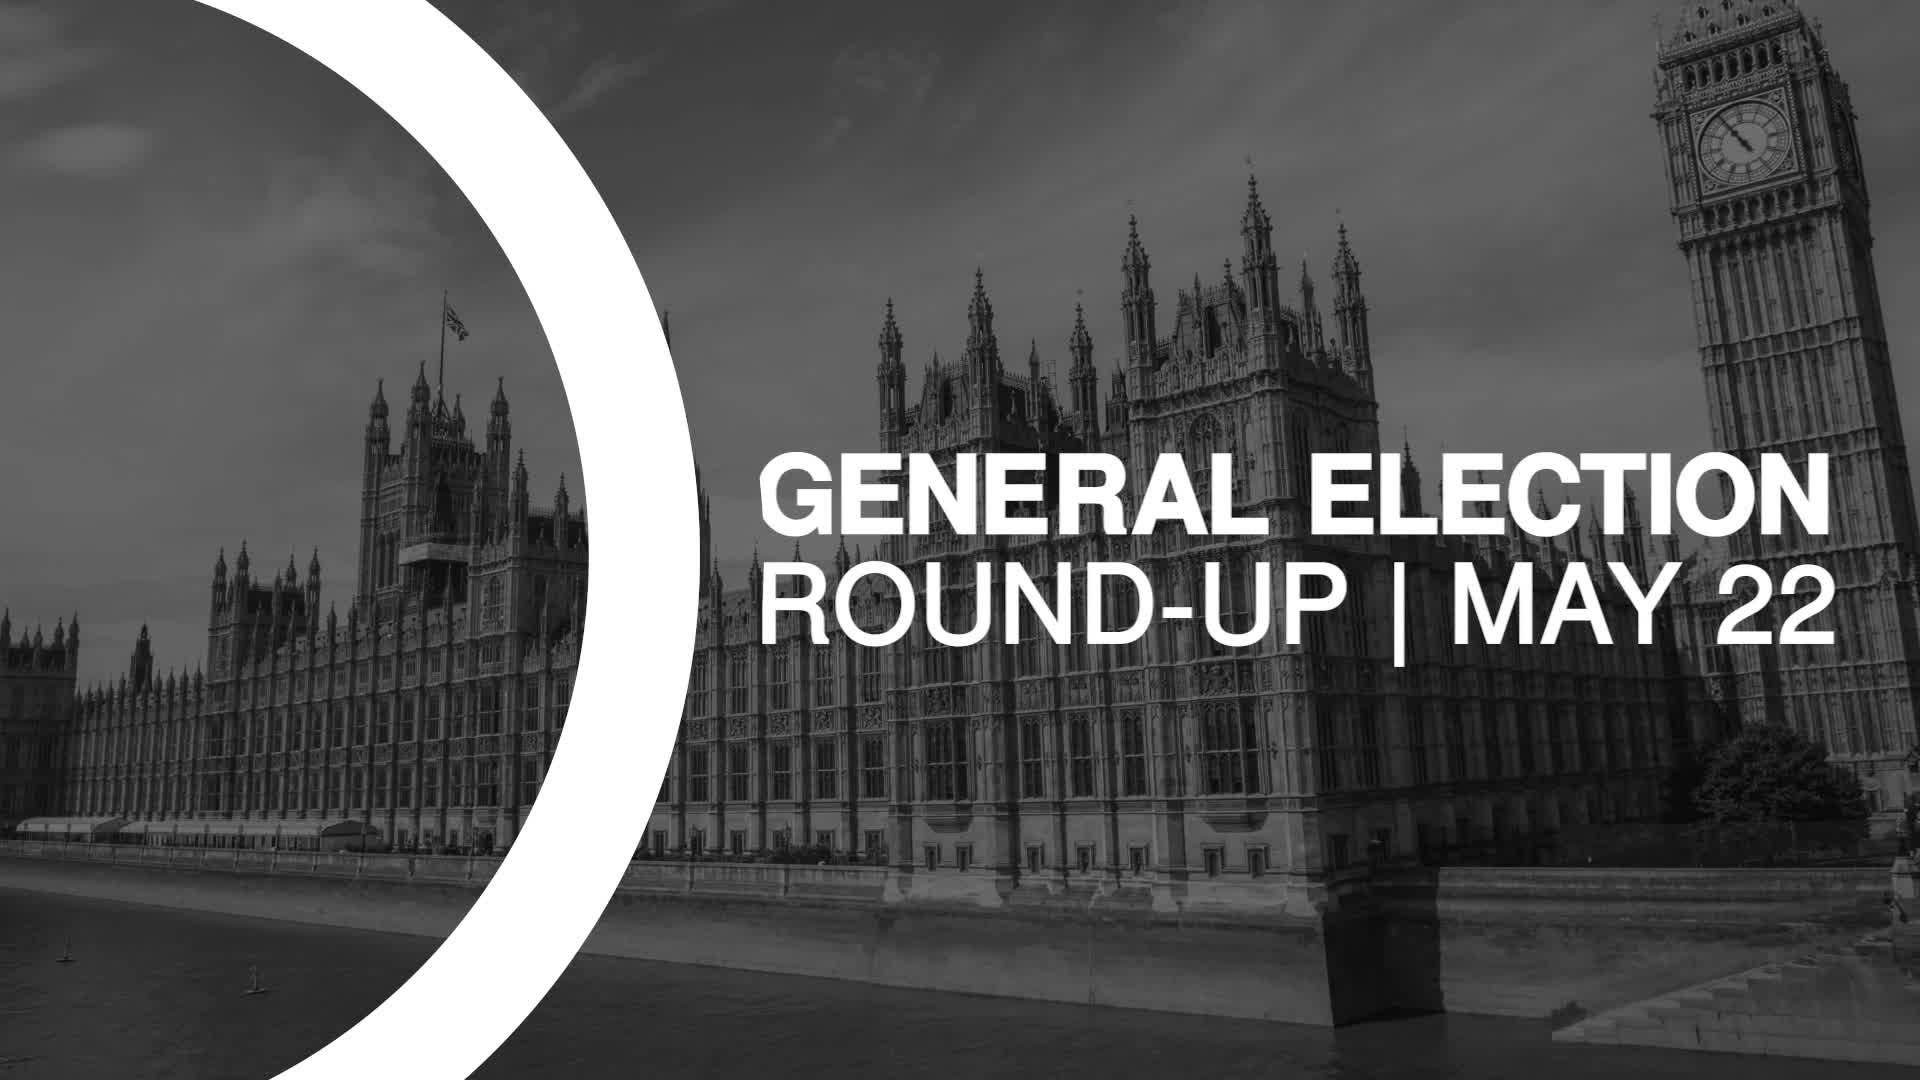 General Election Round-up: May 22